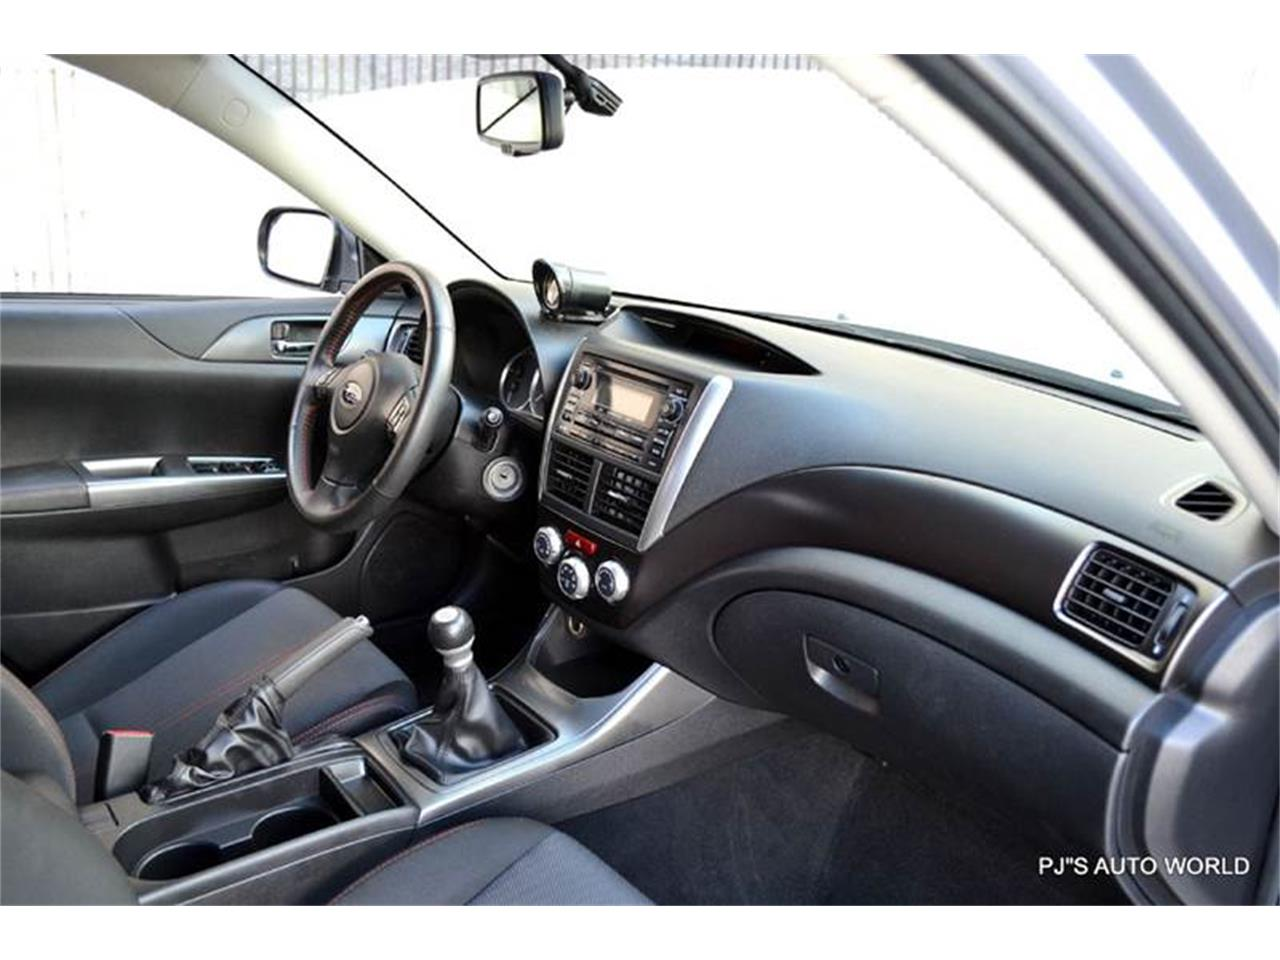 Large Picture of 2013 Impreza located in Clearwater Florida - $19,900.00 - J6WM